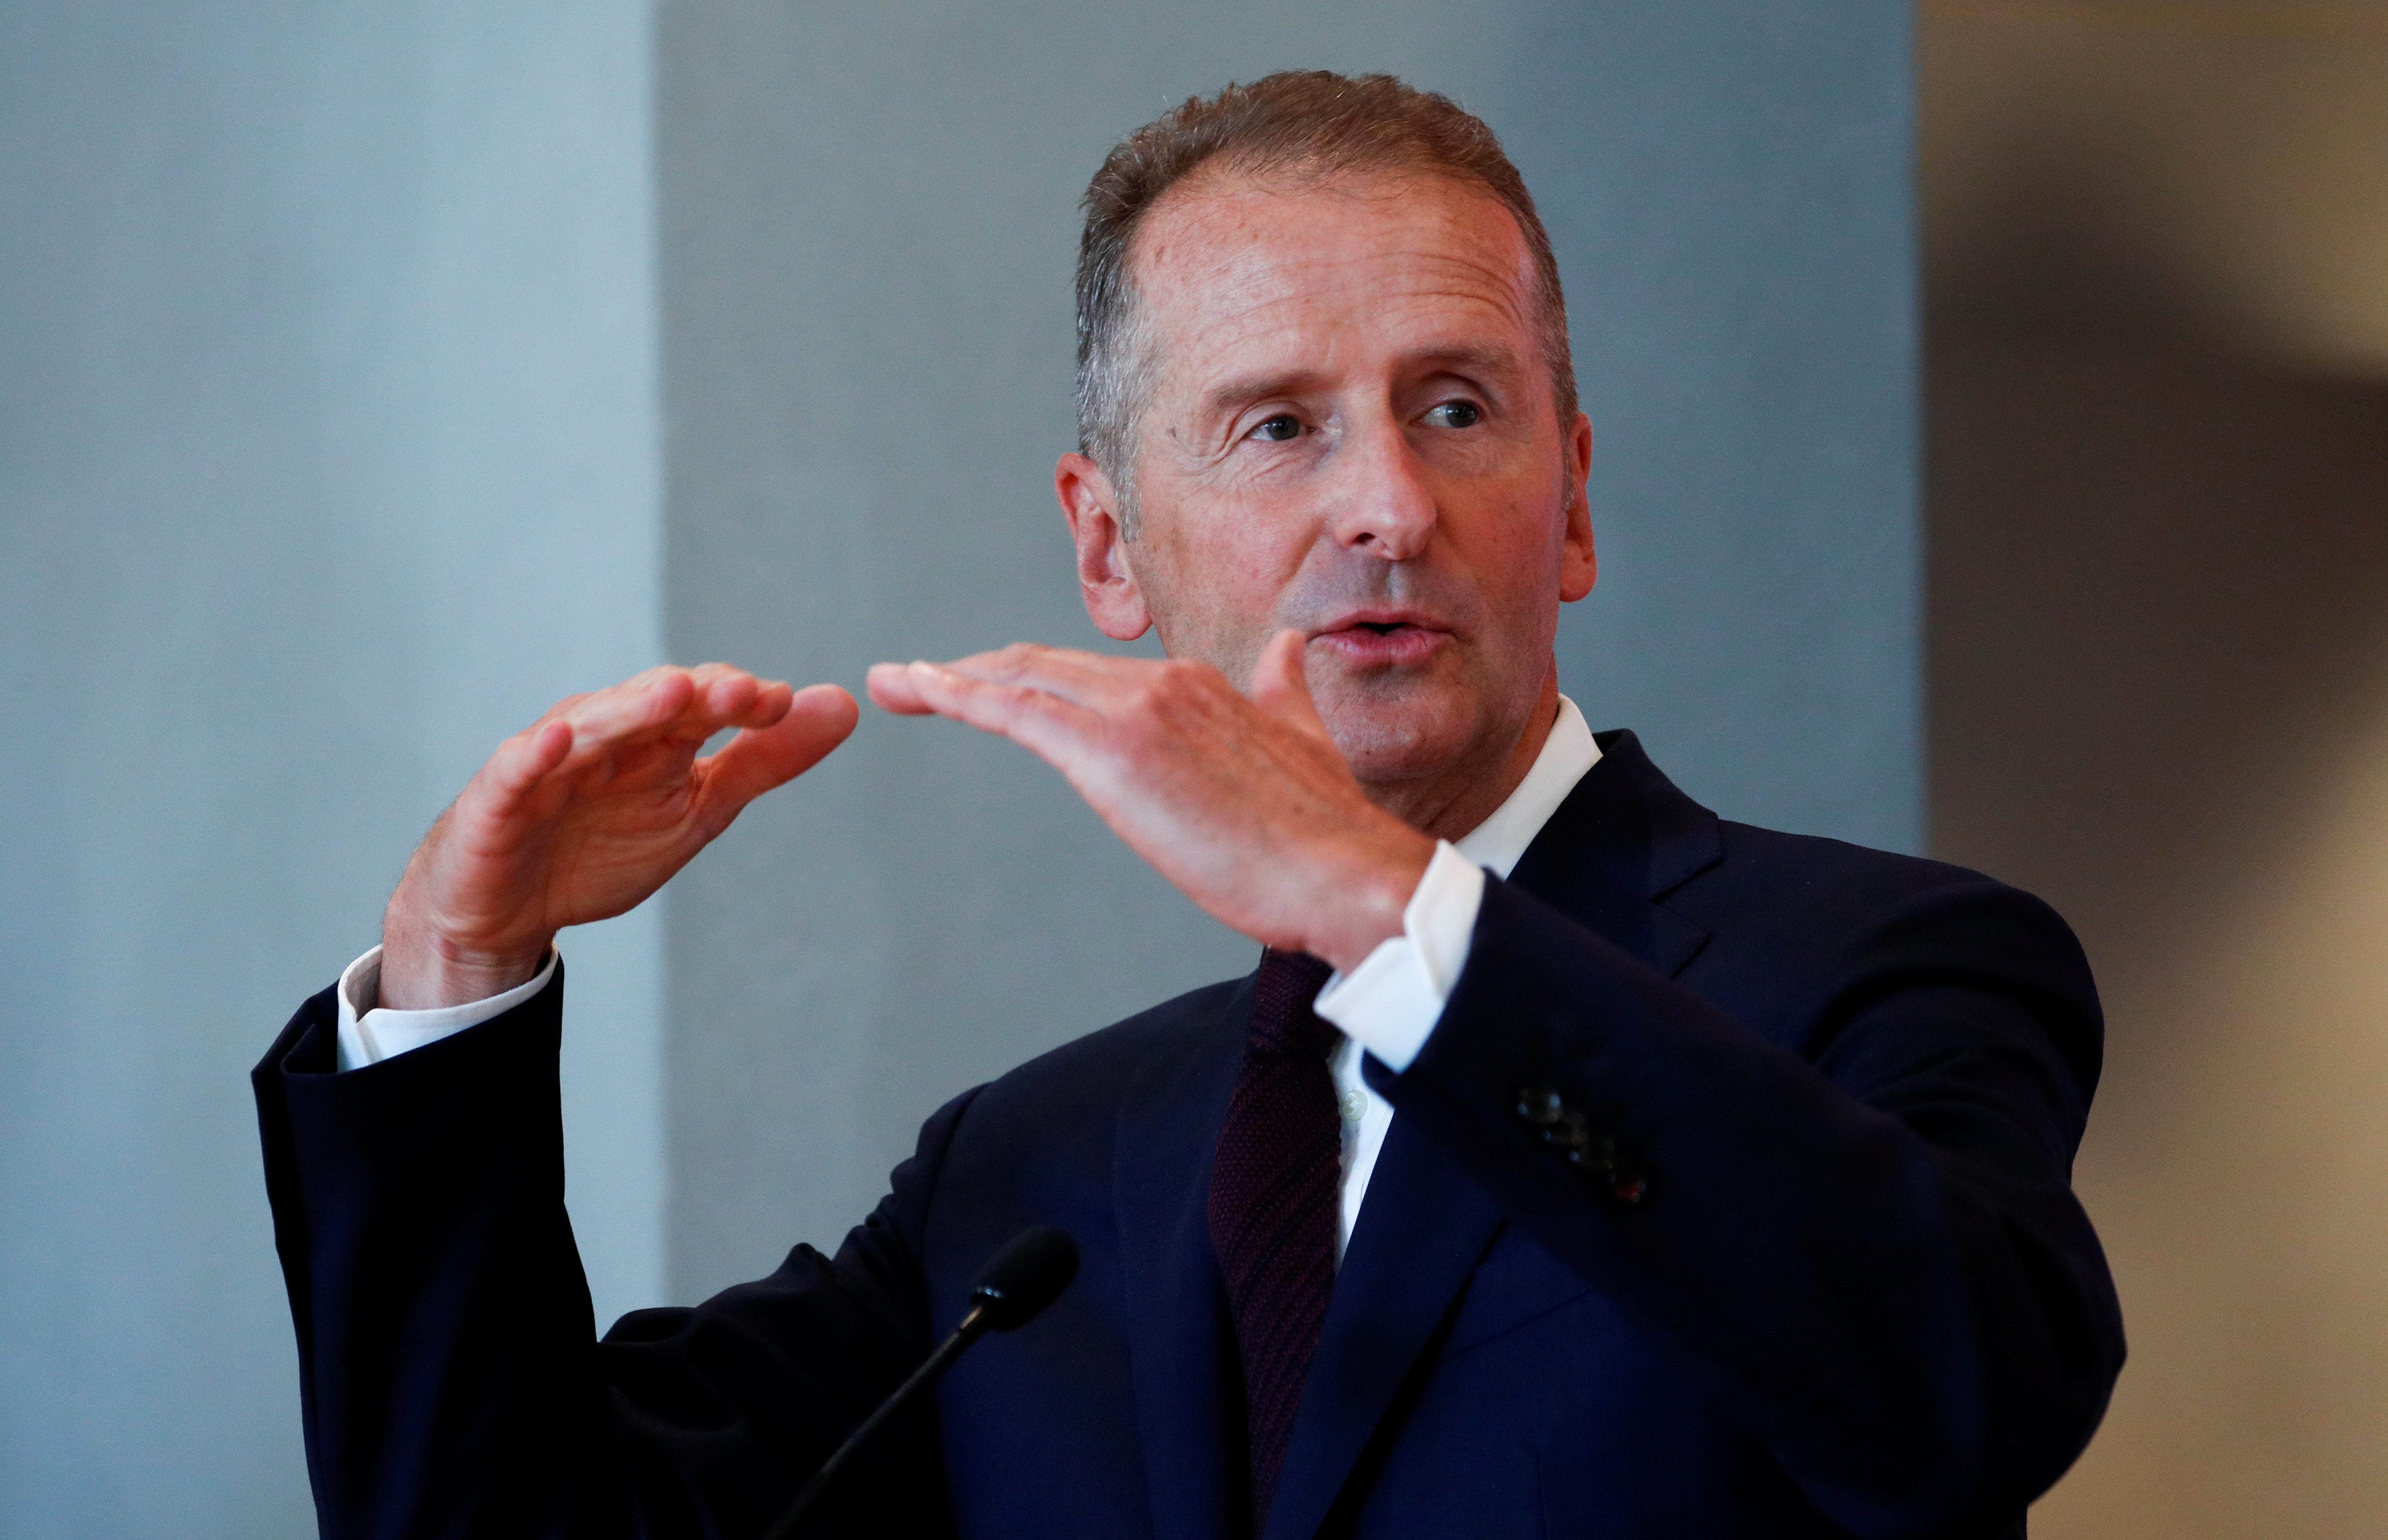 Volkswagen Group Chief Executive Officer Herbert Diess gestures as he speaks during a news conference to announce the appointment of Wayne Griffiths as the new president of Volkswagen's Spanish brand SEAT, in Barcelona, Spain September 23, 2020. REUTERS/Albert Gea